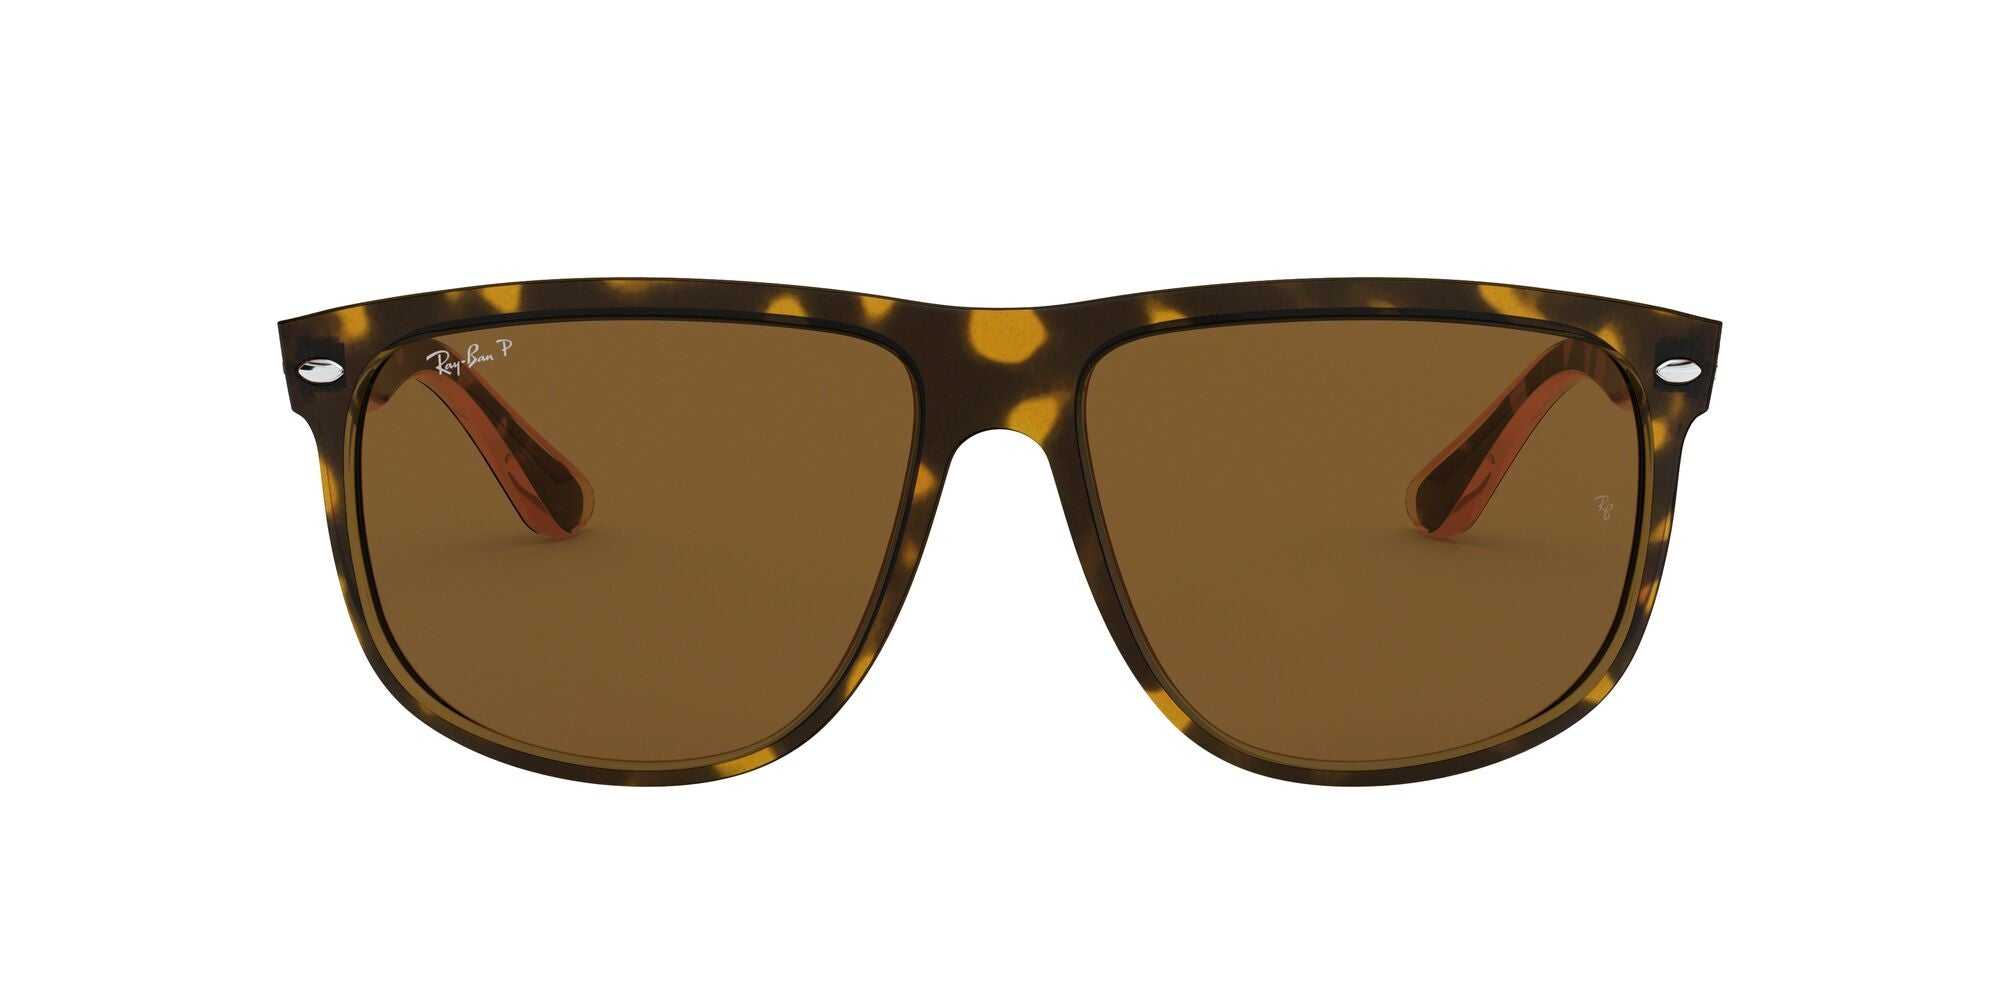 LIGHT HAVANA | CRYSTAL BROWN POLARIZED